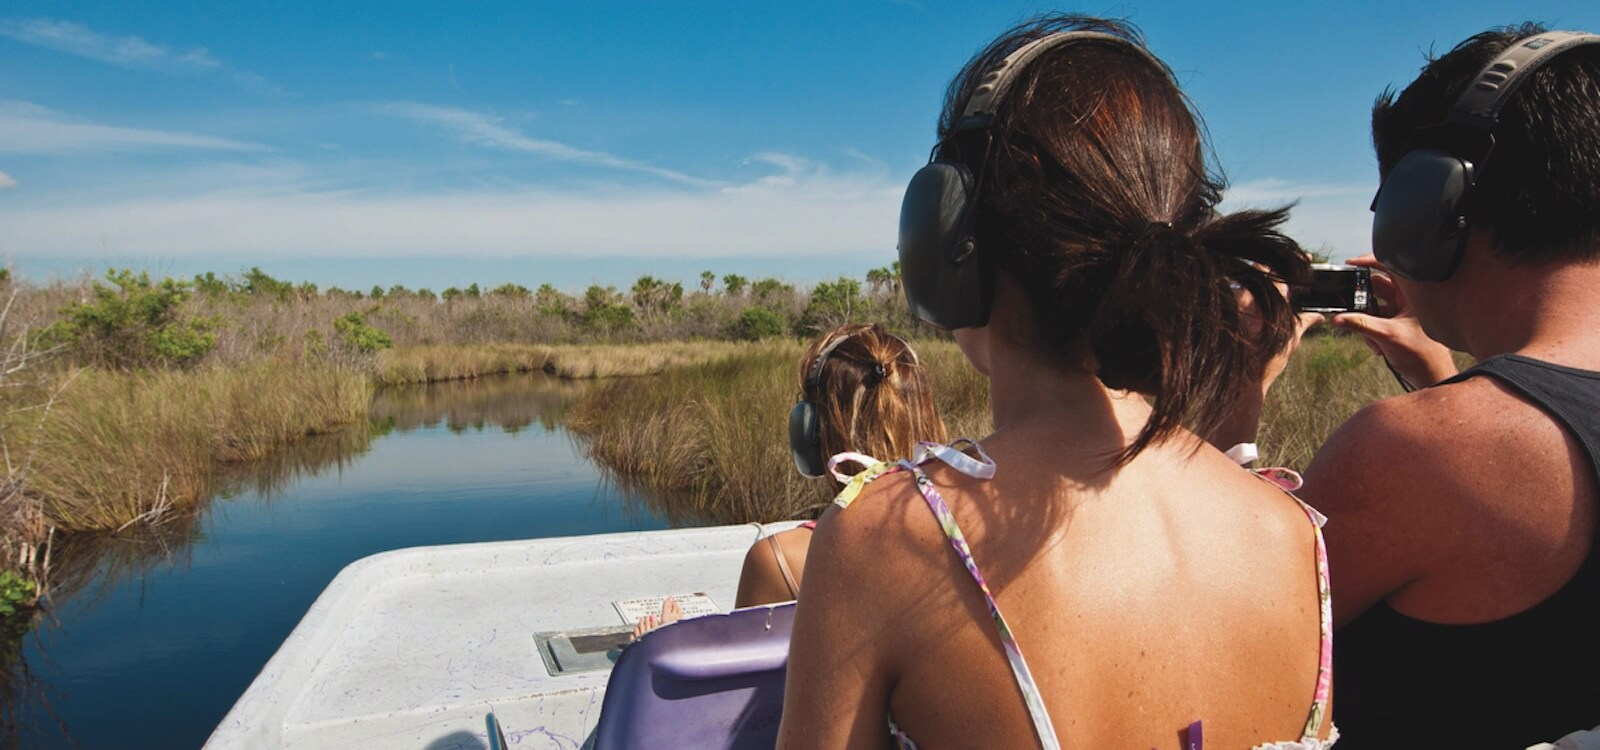 MustDo.com | Airboat tour in Florida.